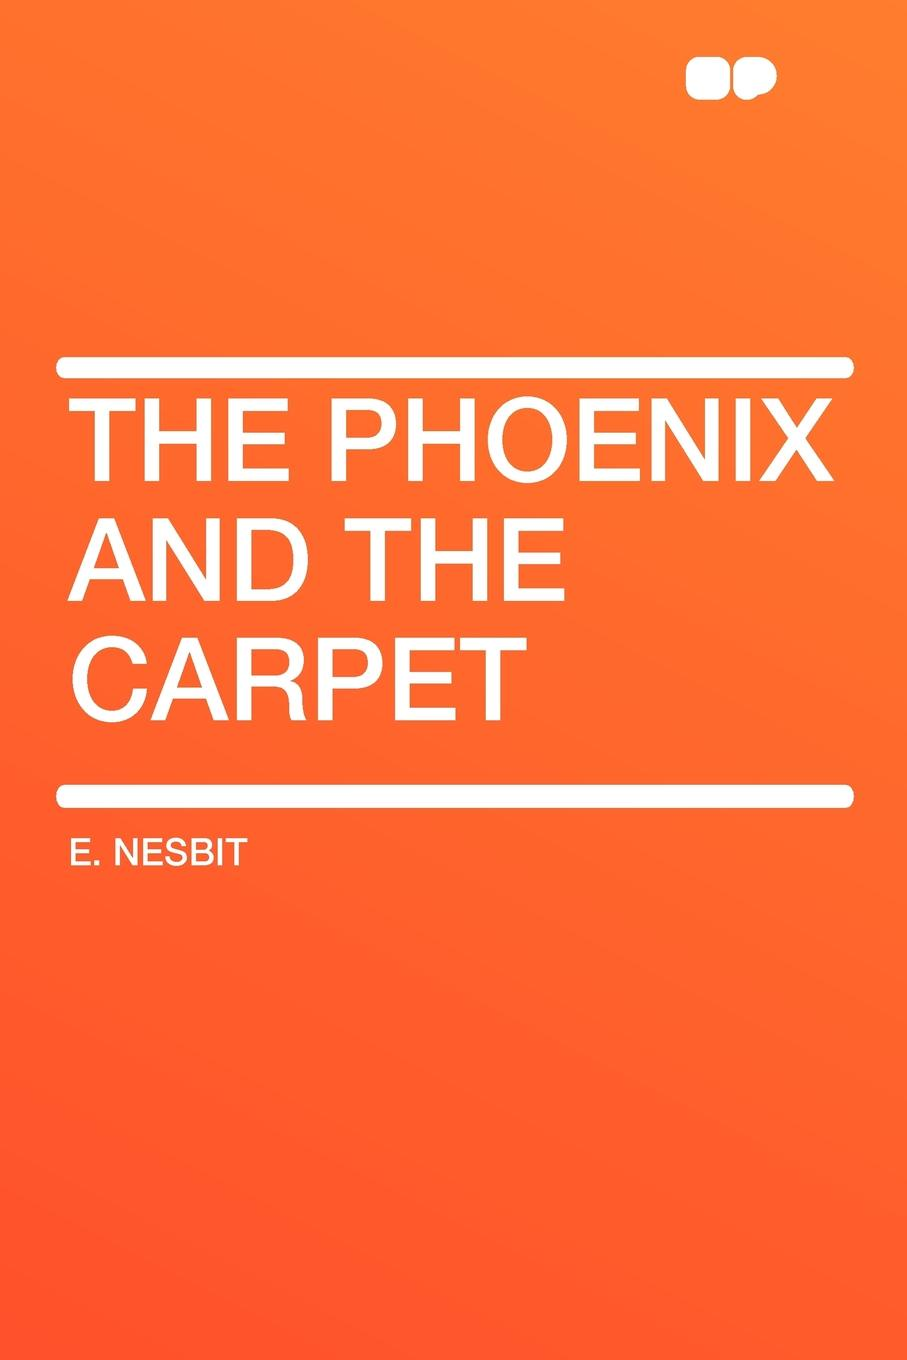 Фото - E. Nesbit The Phoenix and the Carpet сувениры народности вай dragon and phoenix hp0010